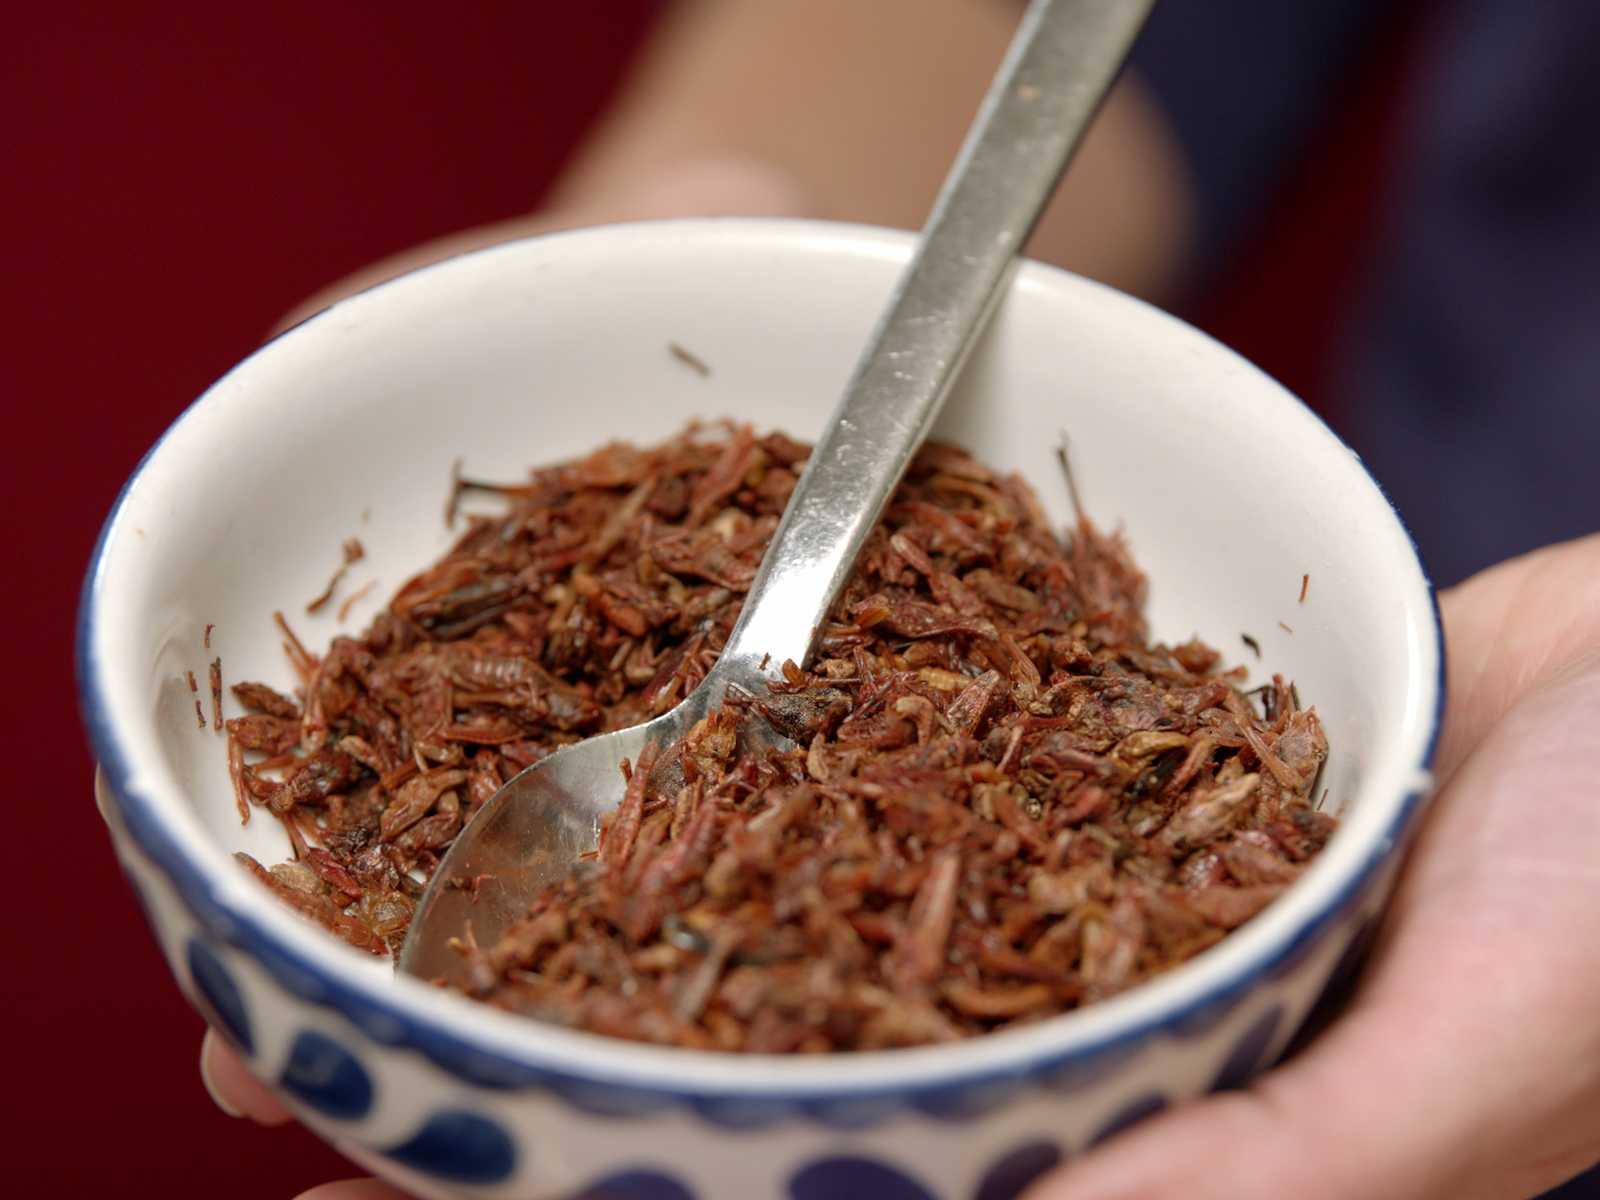 How to Swap Insect Ingredients Into Your Diet